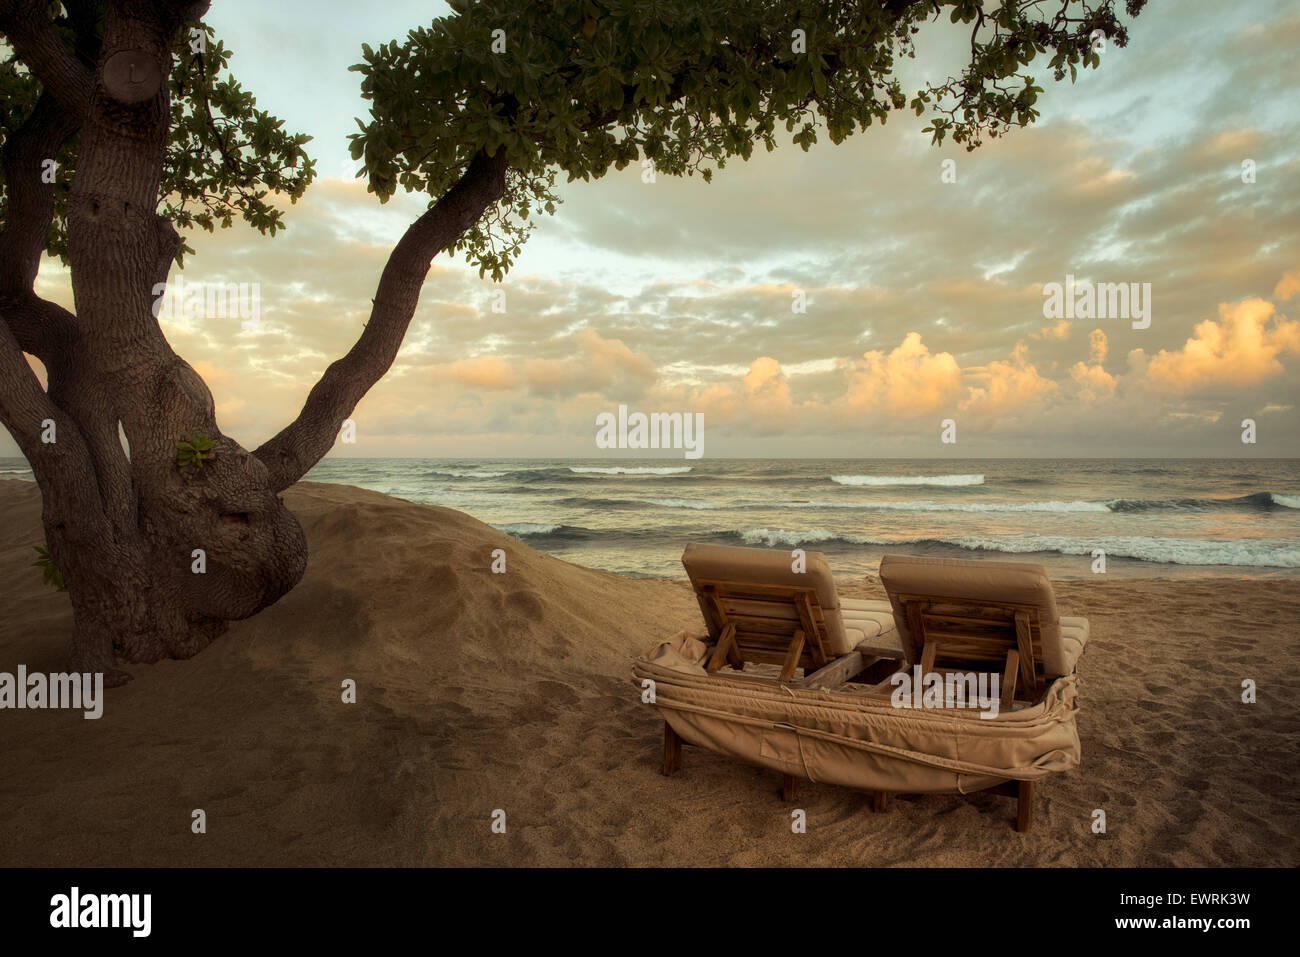 Beach chairs sunrise - Stock Photo Sunrise And Waves With Beach Chairs Hawaii The Big Island